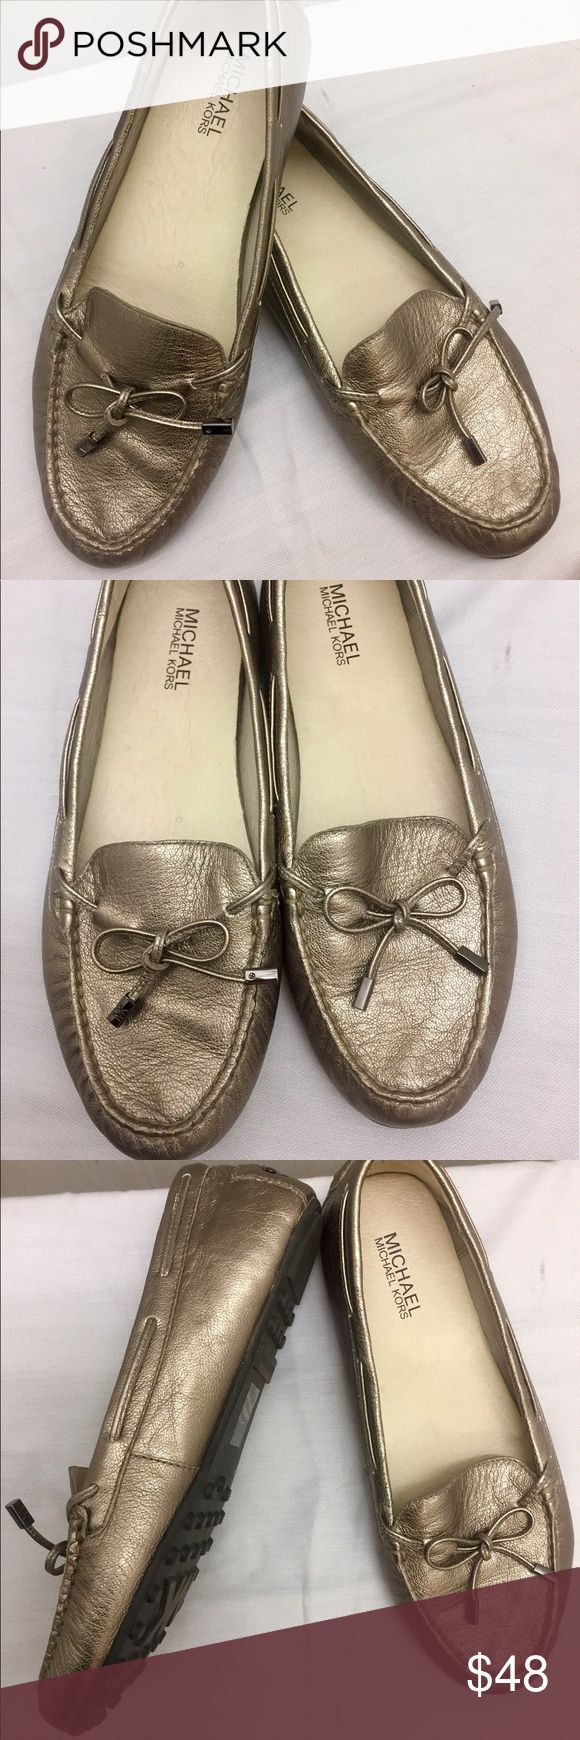 """MICHAEL KORS  """"Daisy"""" Leather Driving Loafer Flats Great looking and Ultra comfortable Pewter leather tone """"DAISY"""" Moccasin loafer flats by Michael KORS.  Round toe with leather lace bow with Pewter tone hardware with """"MK"""" initial detail engrave, hardware logo label at back of heel and comfortable driving loafer style sole in rubber with gripper design. These shoes are in """"Good Condition"""" with little to no signs of wear. Size 10 Michael Kors Shoes Flats & Loafers"""